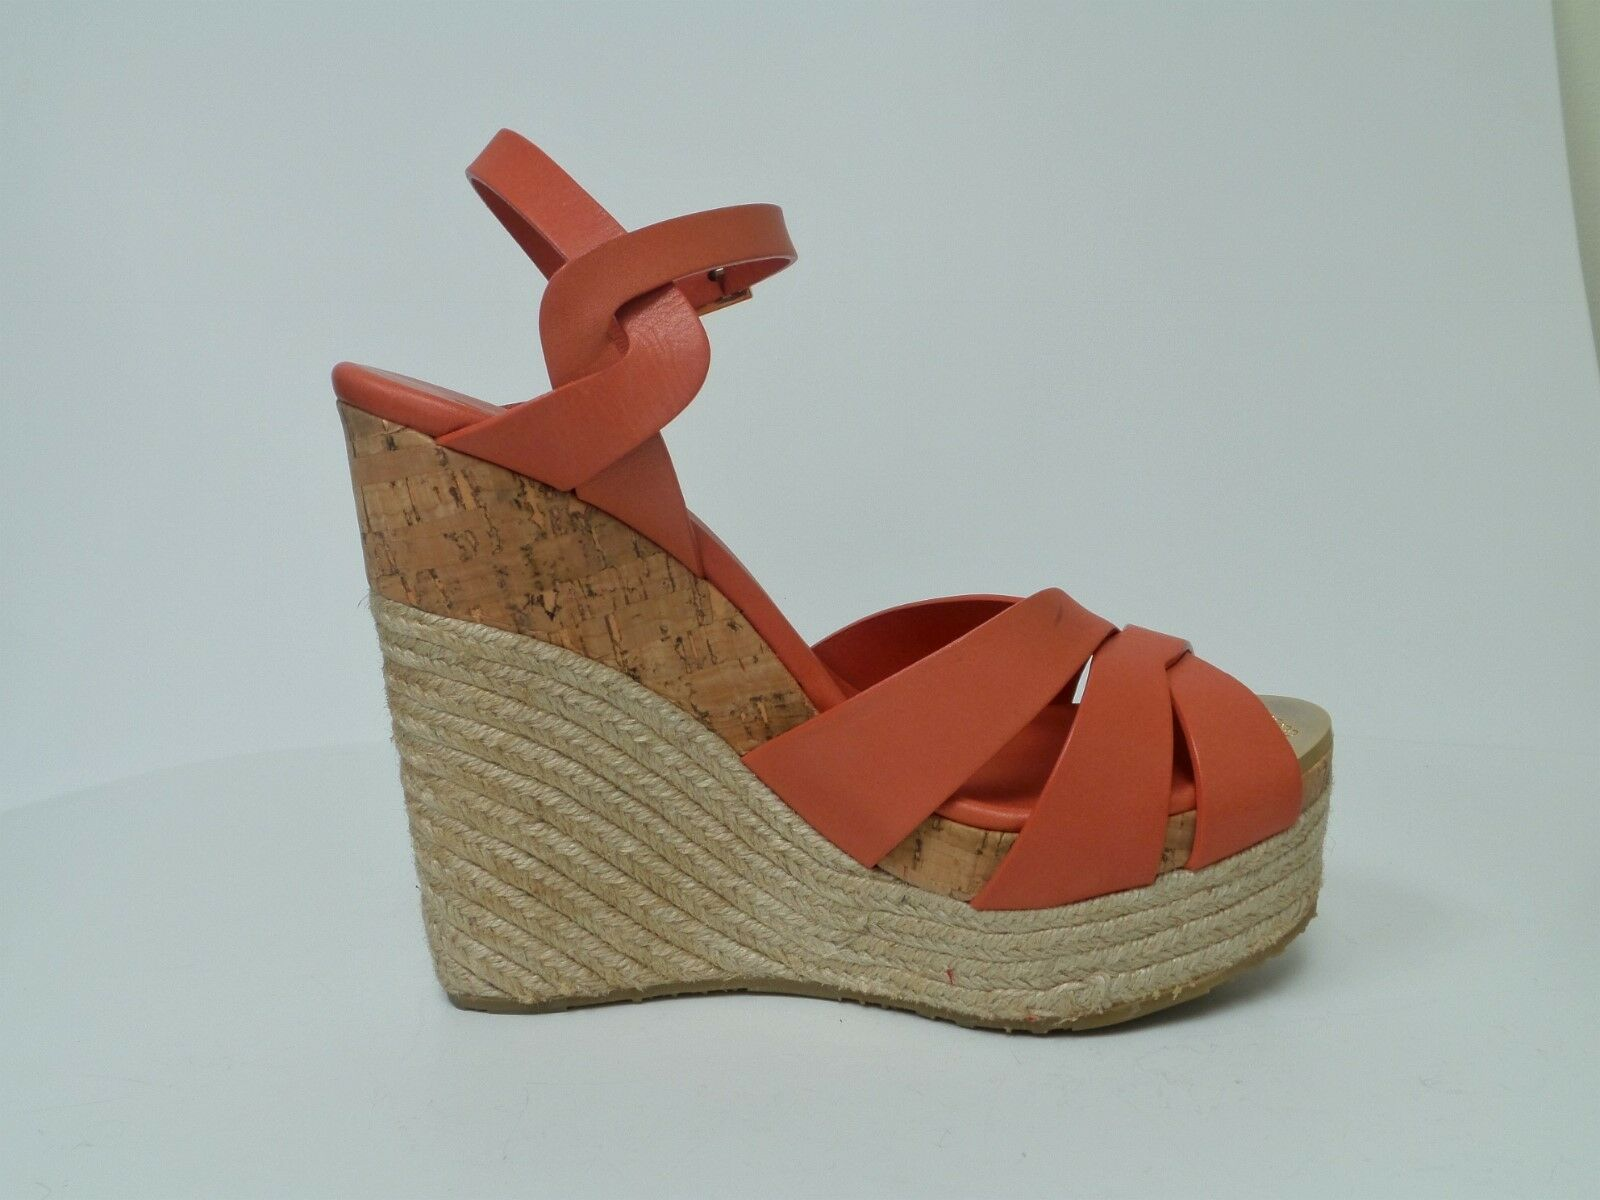 JIMMY CHOO Peach Leather Wedge Sandals size 39 (8.5 US)